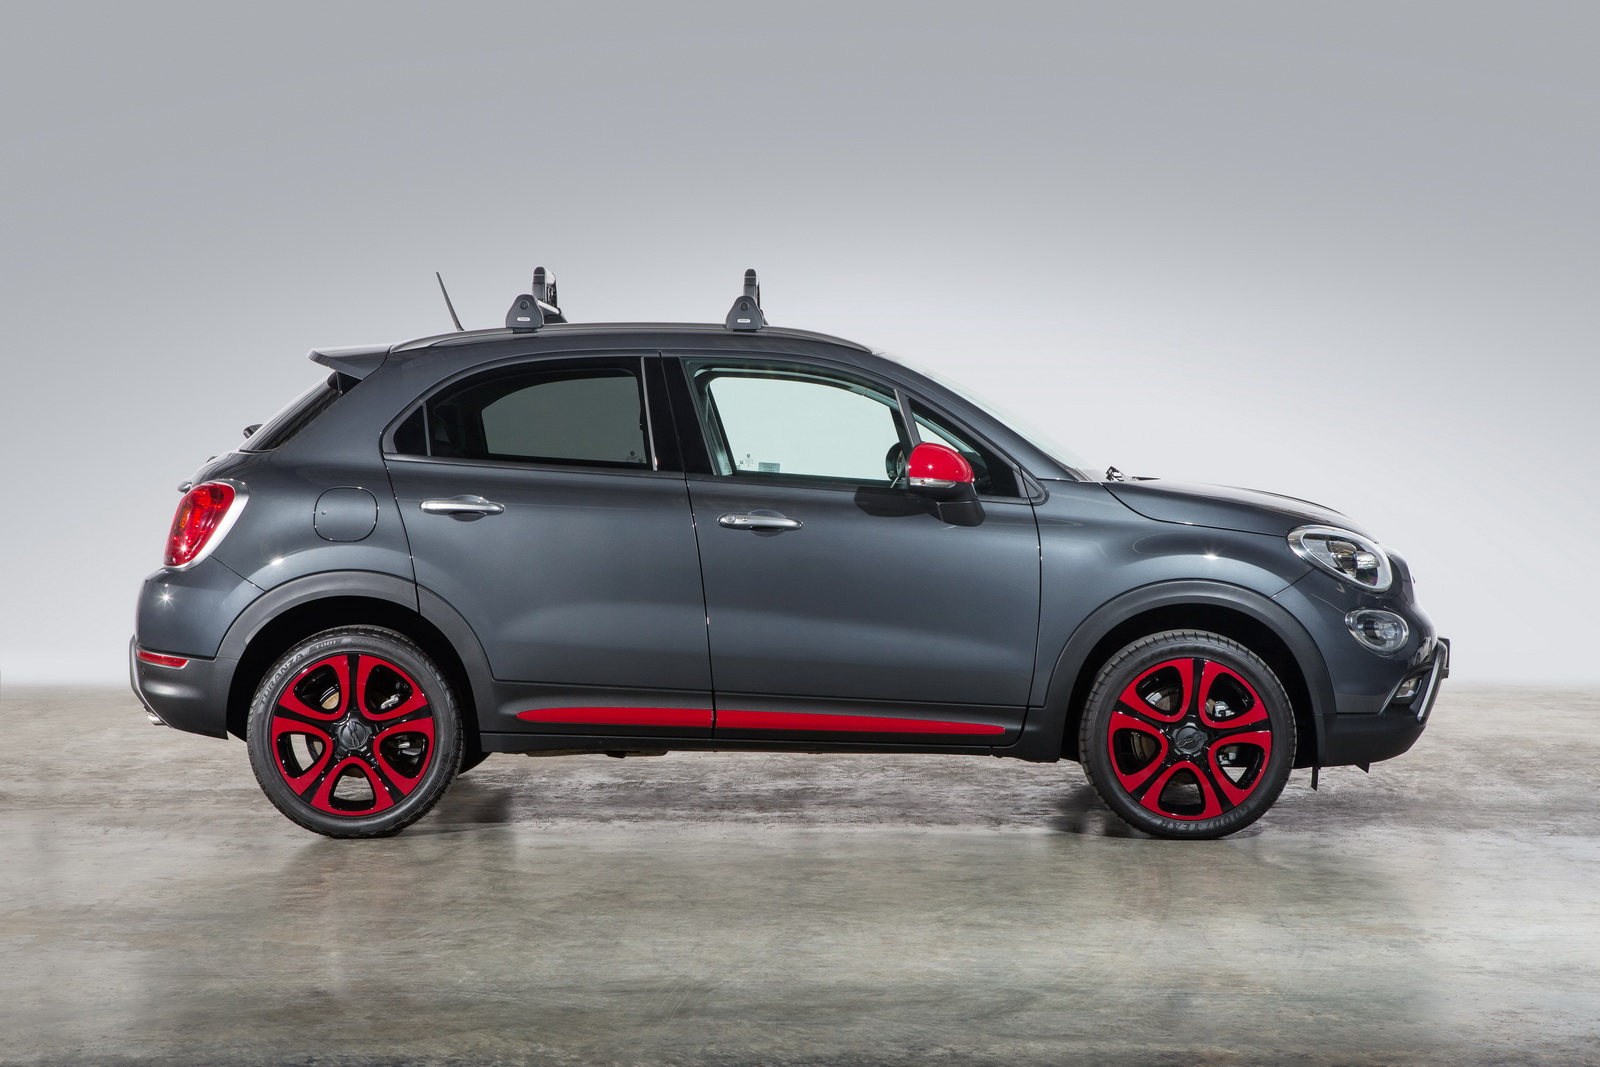 Mopar Launches Range Of Accessories For Fiat 500x In The